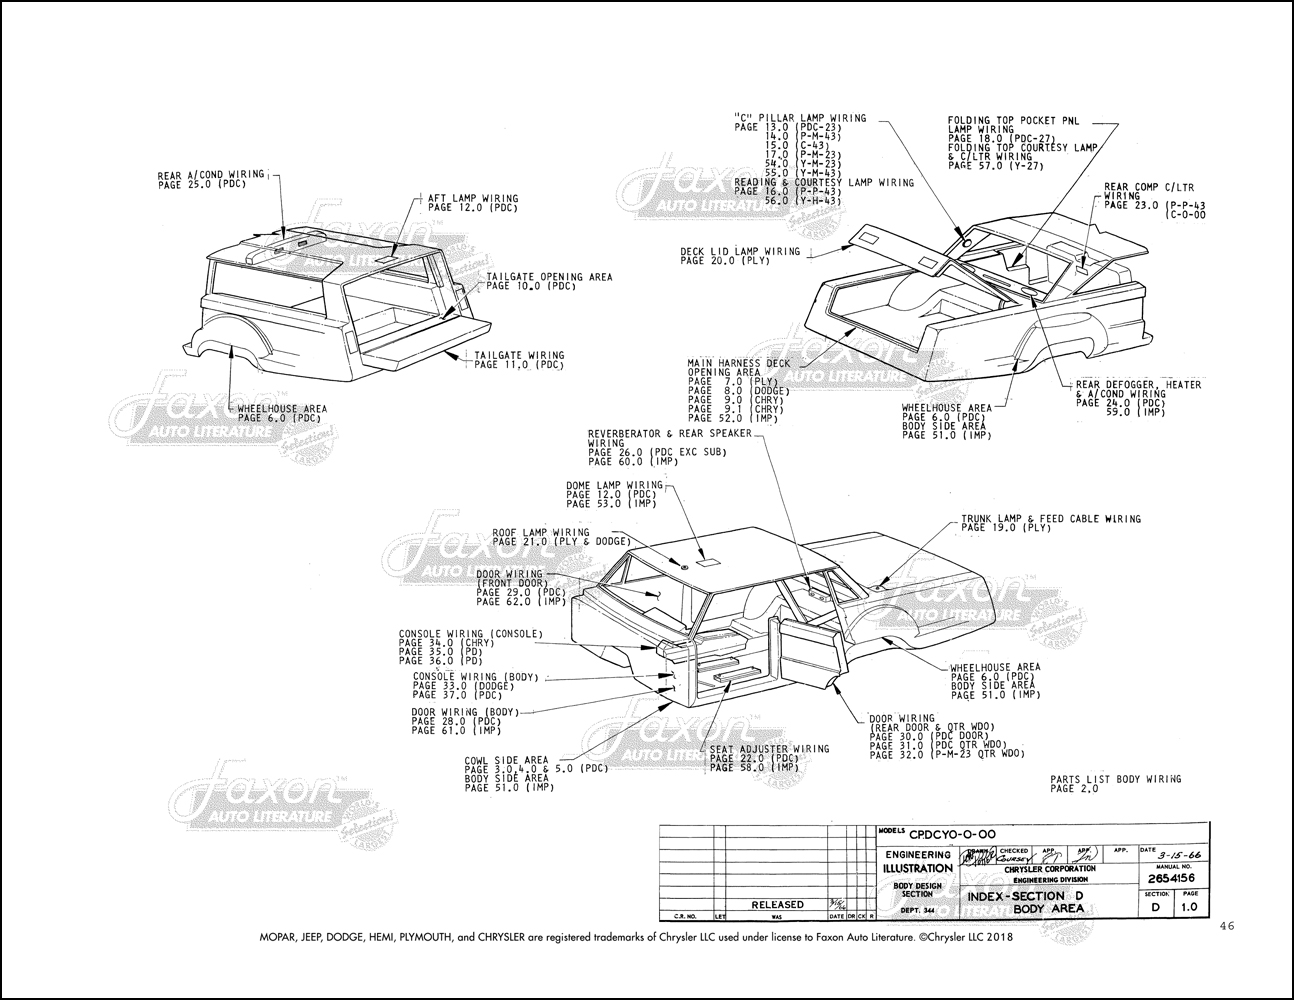 1967 Chrysler, Dodge, and Plymouth Big Car Electrical embly Manual on